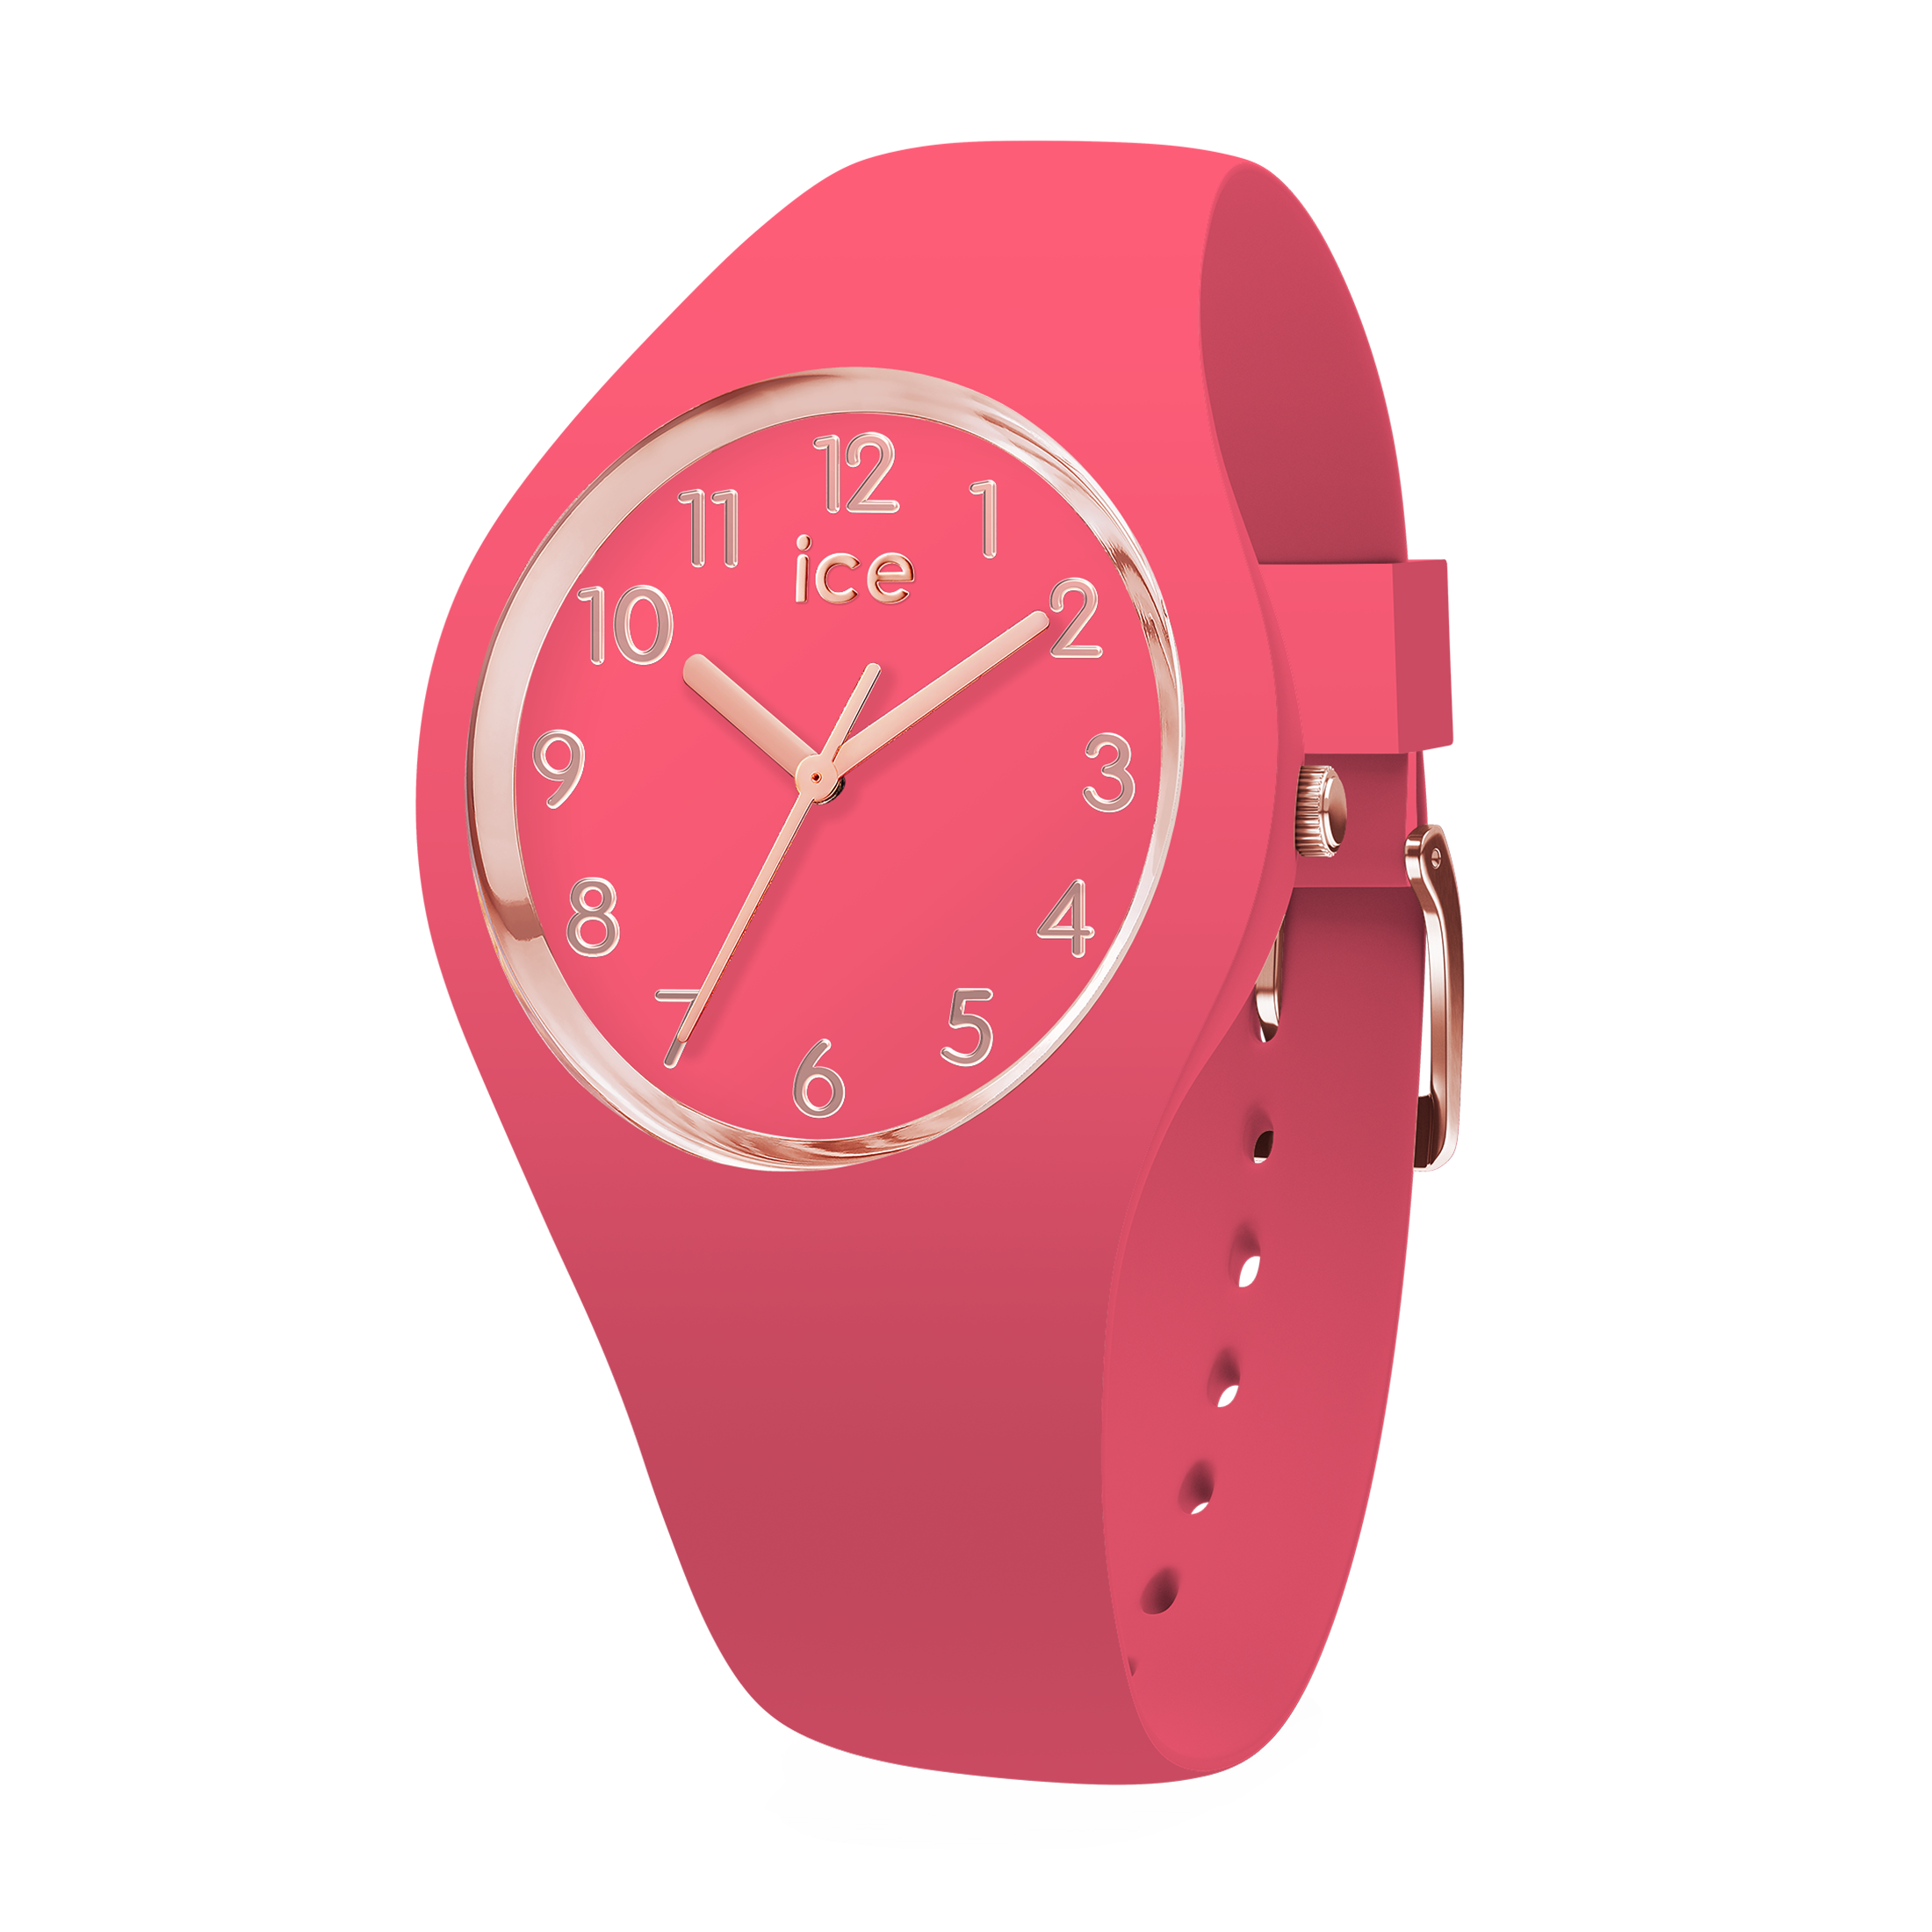 ICE glam colour raspberry in small  icewatch   Time waits for none ... ccf07c7434d2